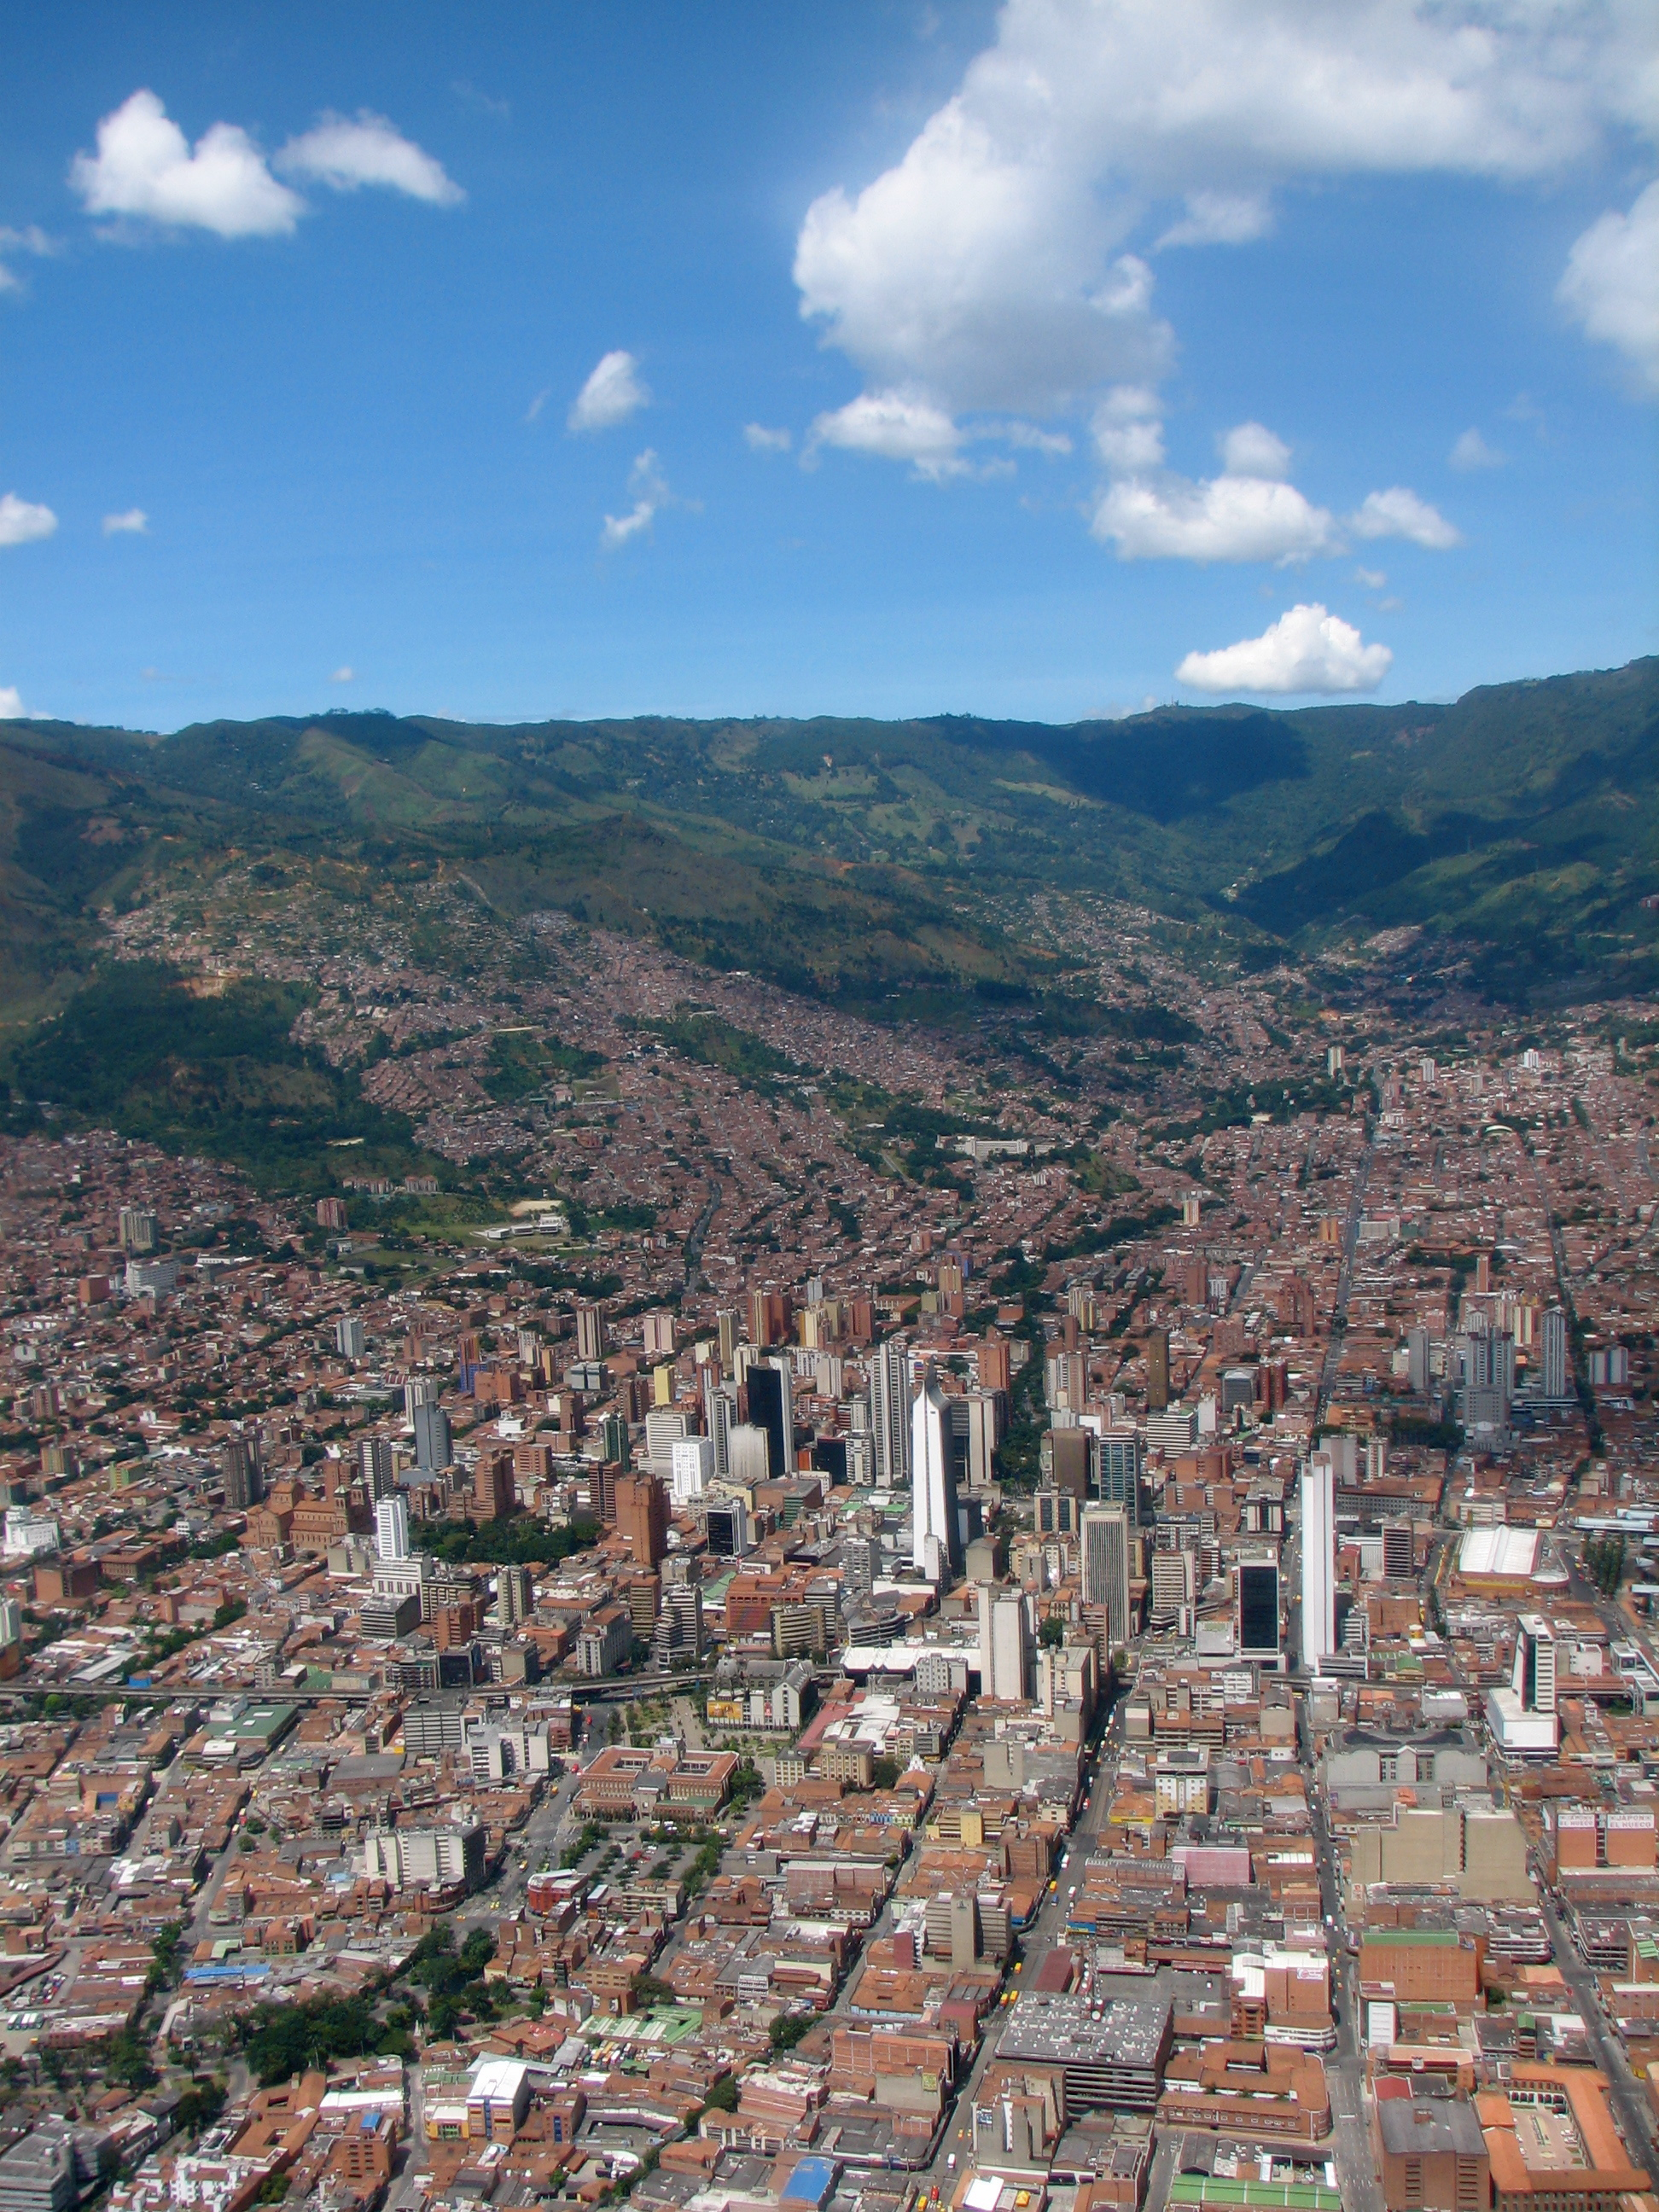 http://upload.wikimedia.org/wikipedia/commons/1/19/Centro_de_Medellin-Colombia.jpg